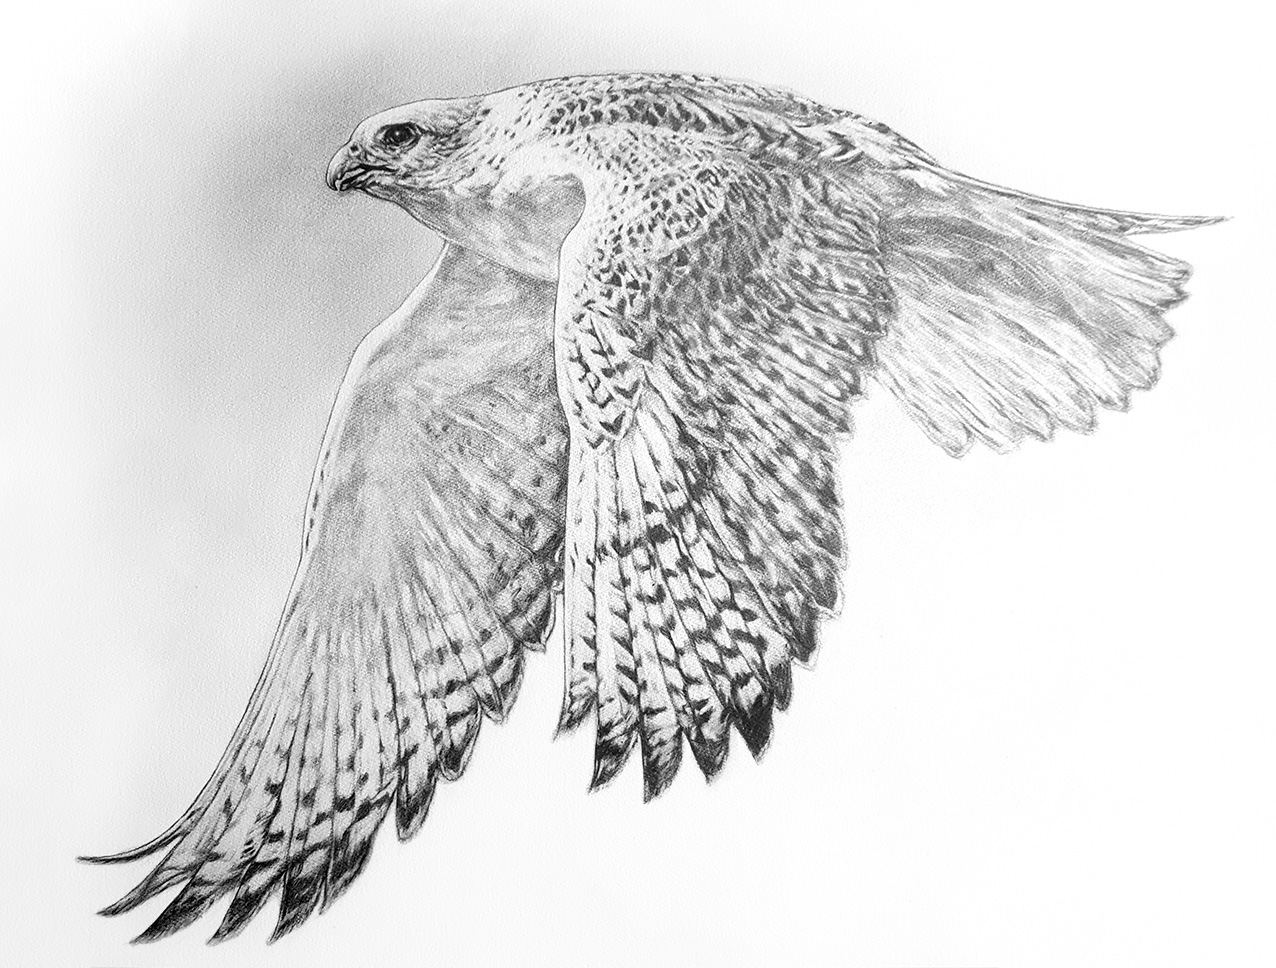 Flying Gyr Falcon. 2018. Graphite on 300 GSM Fabriano Artistico Paper (56 x 76cm) SOLD